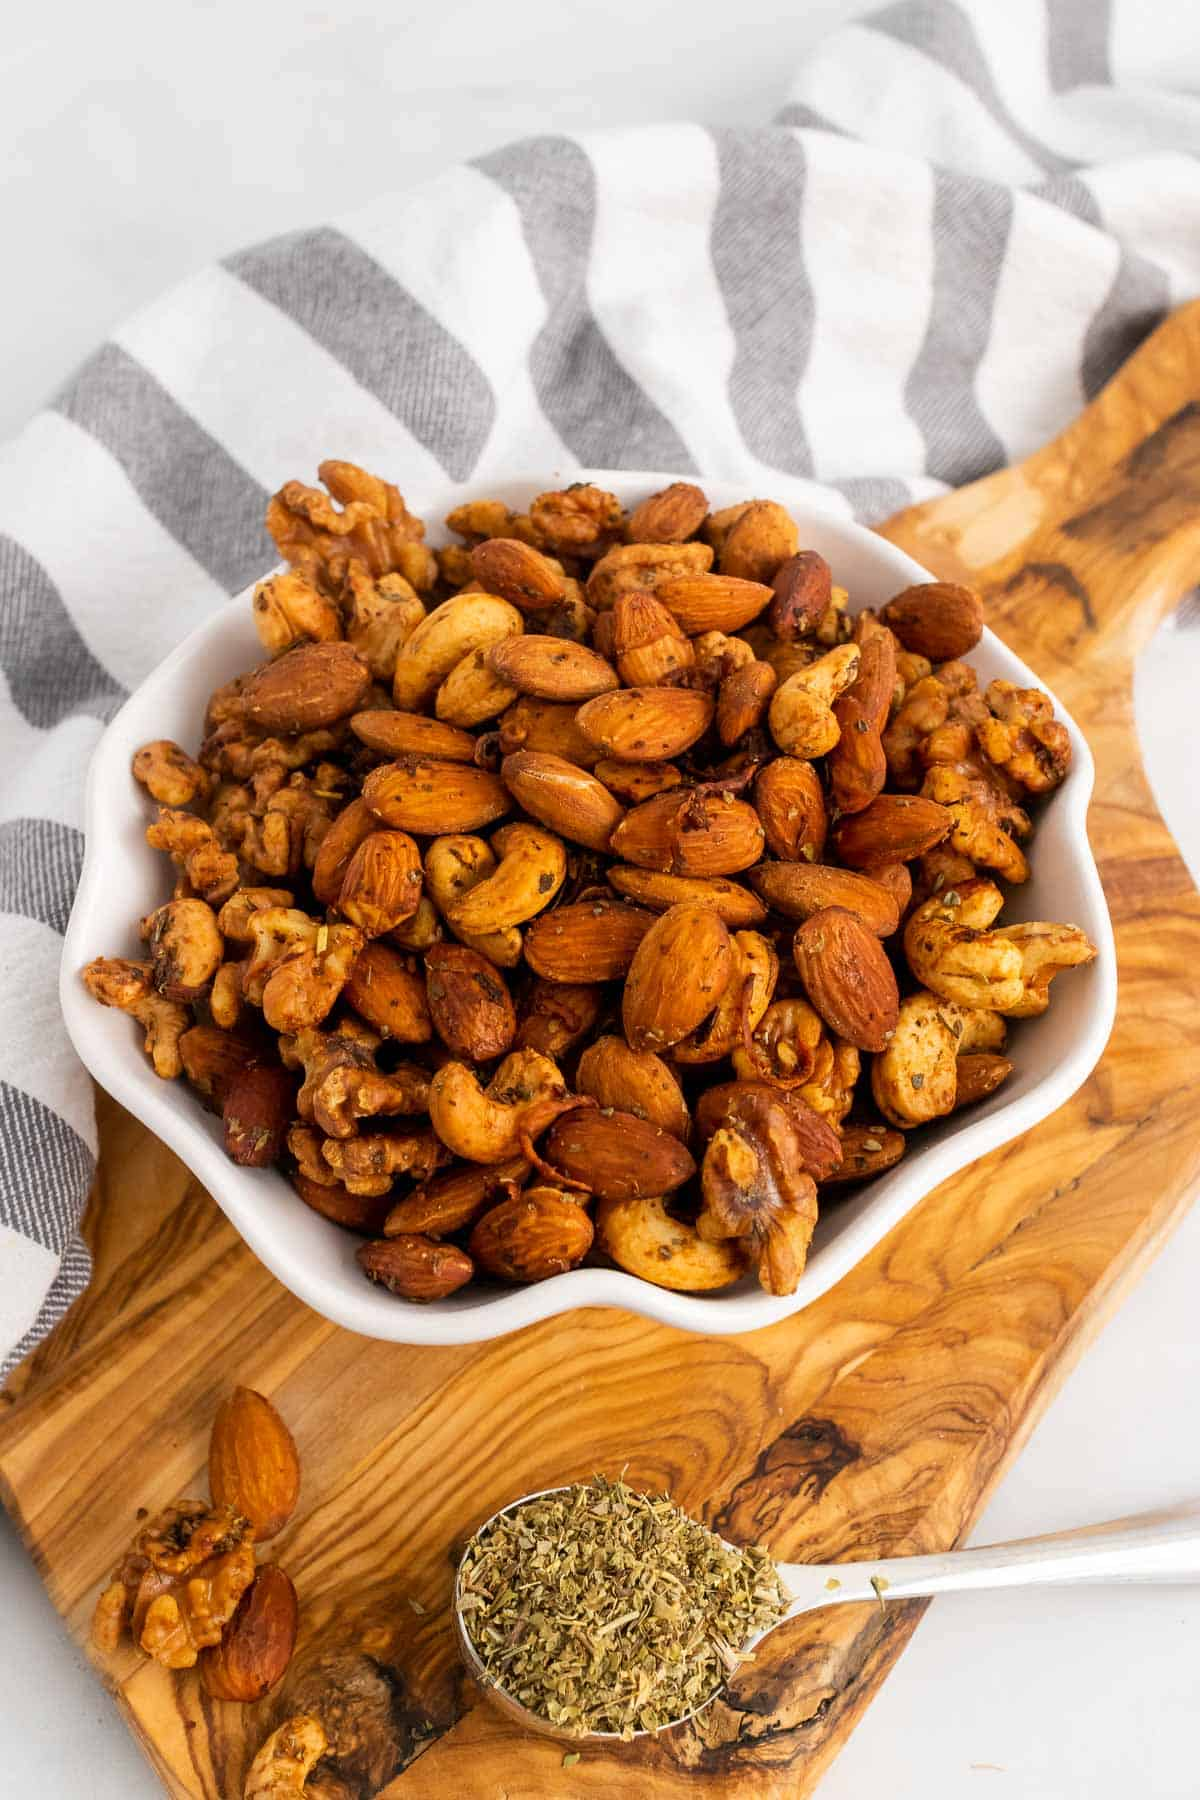 Bowl of nuts next to spoon with spice mix